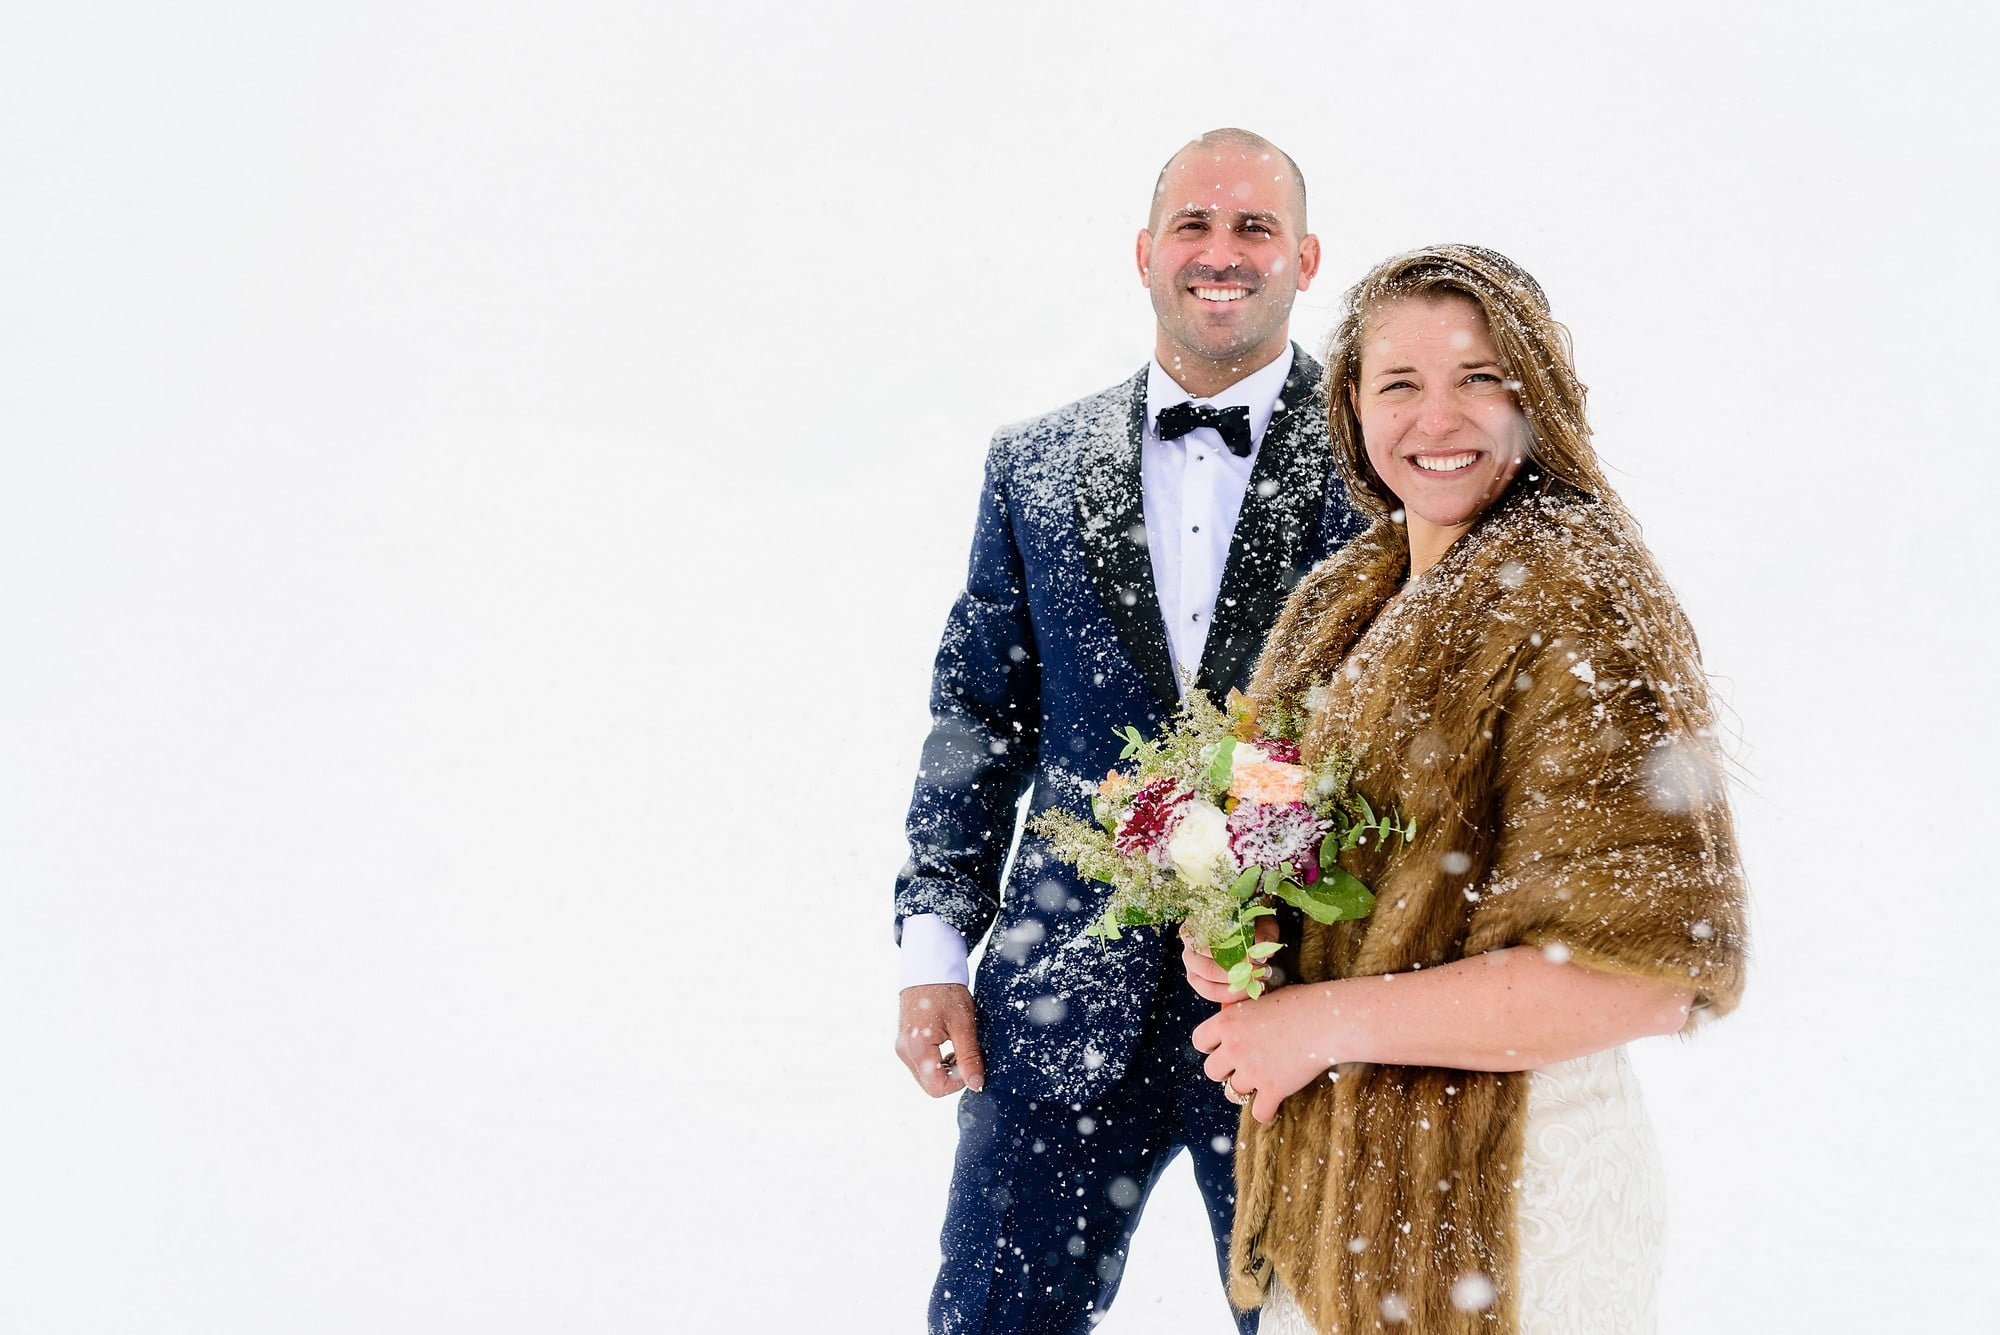 snowing at your wedding